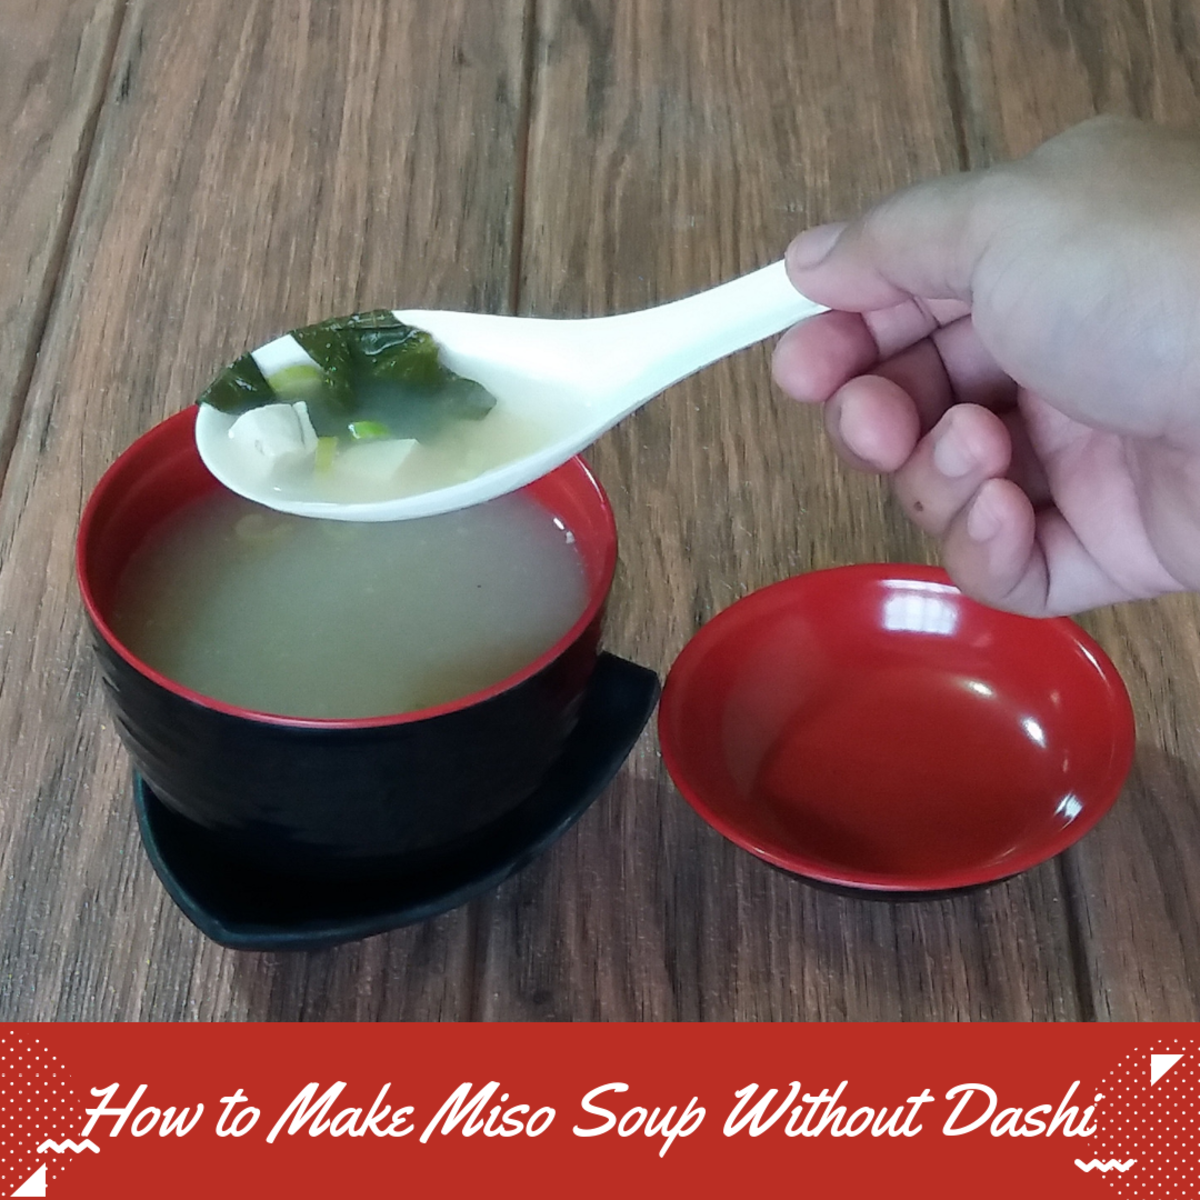 How to Make Miso Soup Without Dashi